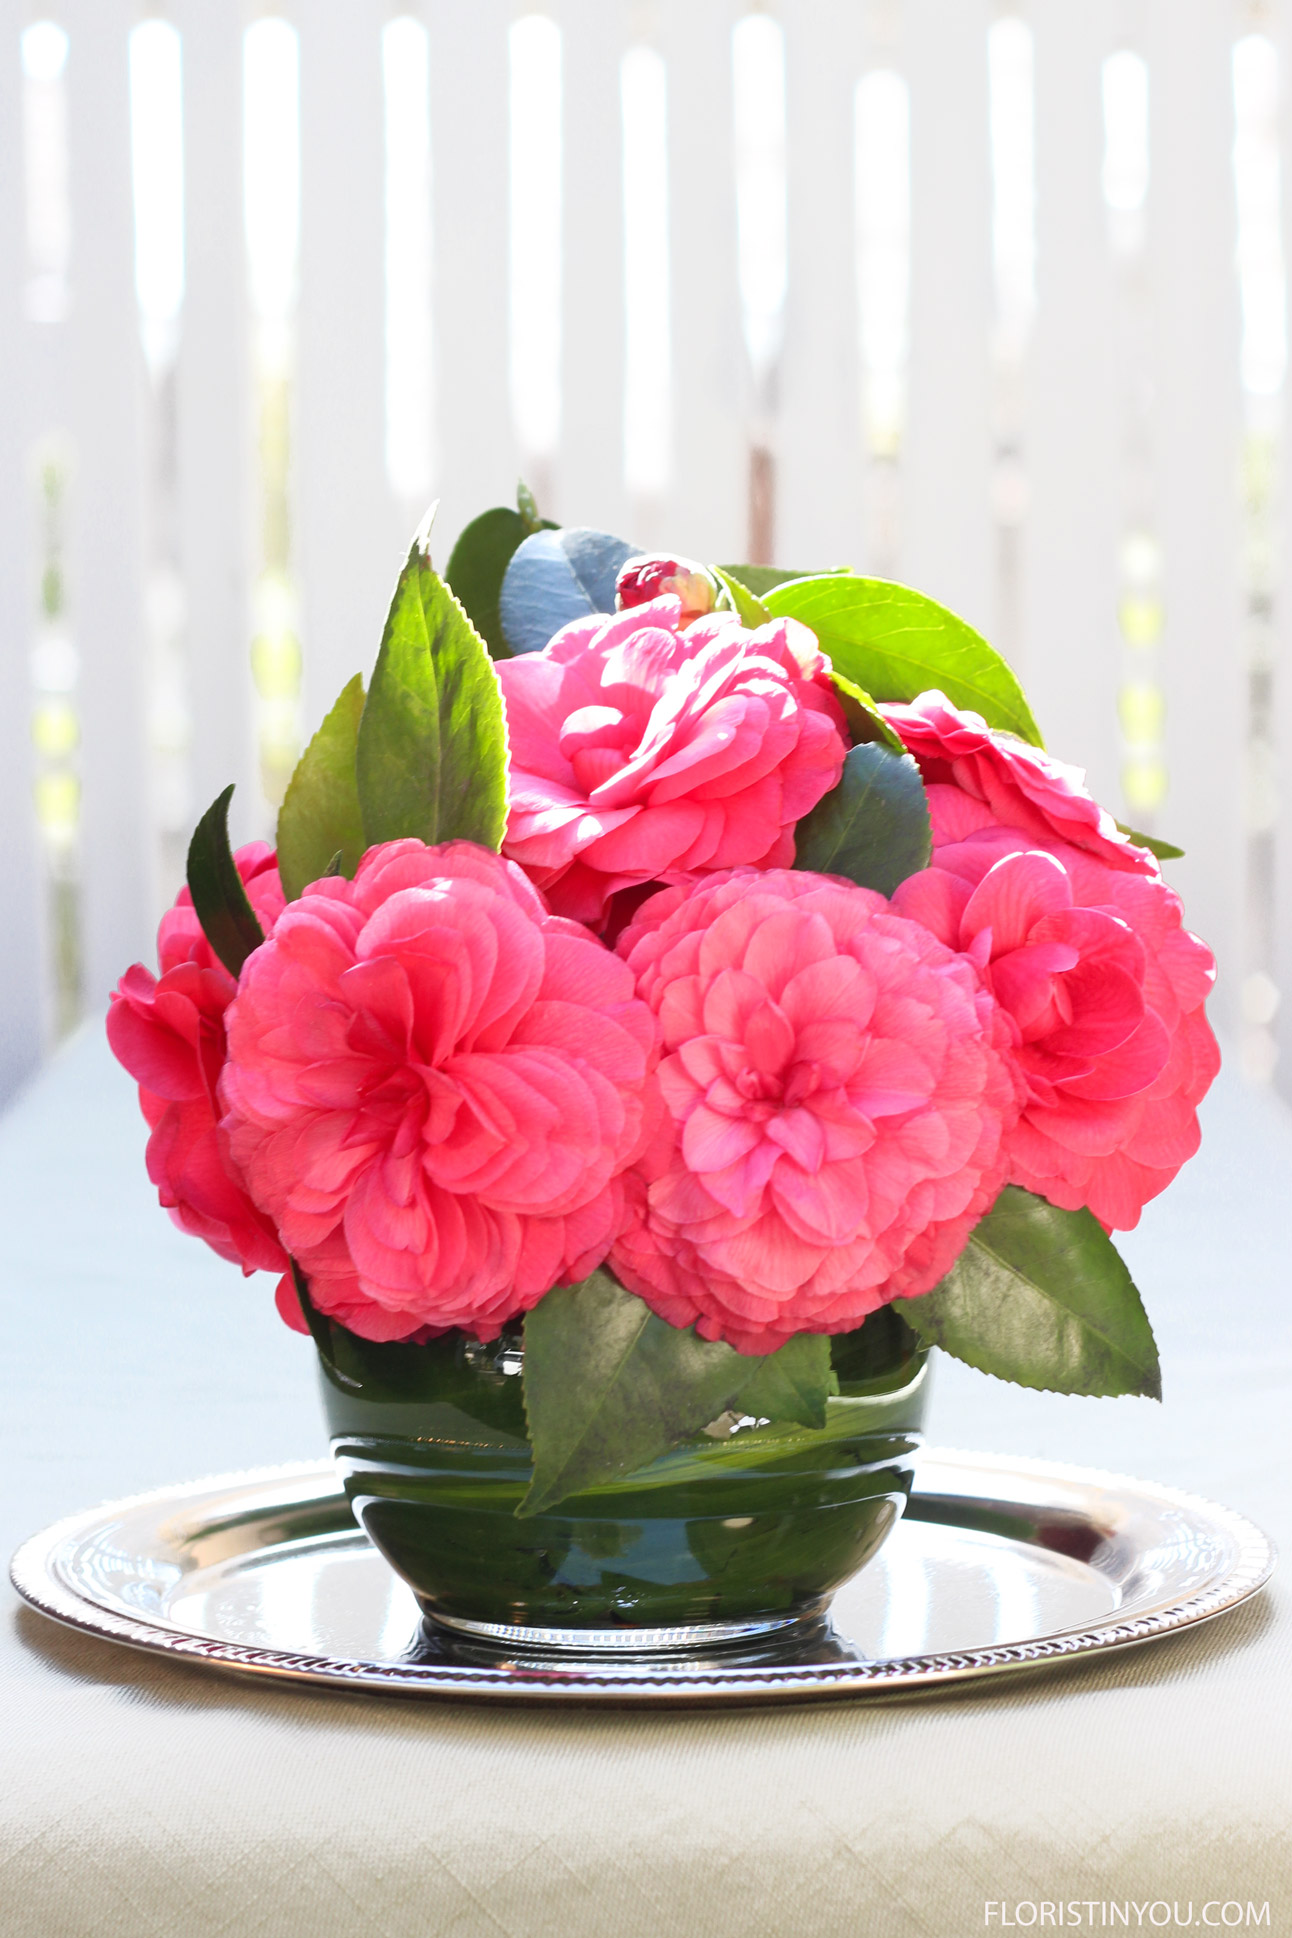 """Small Camellia Centerpiece                     Normal   0           false   false   false     EN-US   JA   X-NONE                                                                                                                                                                                                                                                                                                                                                                              /* Style Definitions */ table.MsoNormalTable {mso-style-name:""""Table Normal""""; mso-tstyle-rowband-size:0; mso-tstyle-colband-size:0; mso-style-noshow:yes; mso-style-priority:99; mso-style-parent:""""""""; mso-padding-alt:0in 5.4pt 0in 5.4pt; mso-para-margin:0in; mso-para-margin-bottom:.0001pt; mso-pagination:widow-orphan; font-size:12.0pt; font-family:Cambria; mso-ascii-font-family:Cambria; mso-ascii-theme-font:minor-latin; mso-hansi-font-family:Cambria; mso-hansi-theme-font:minor-latin;}"""